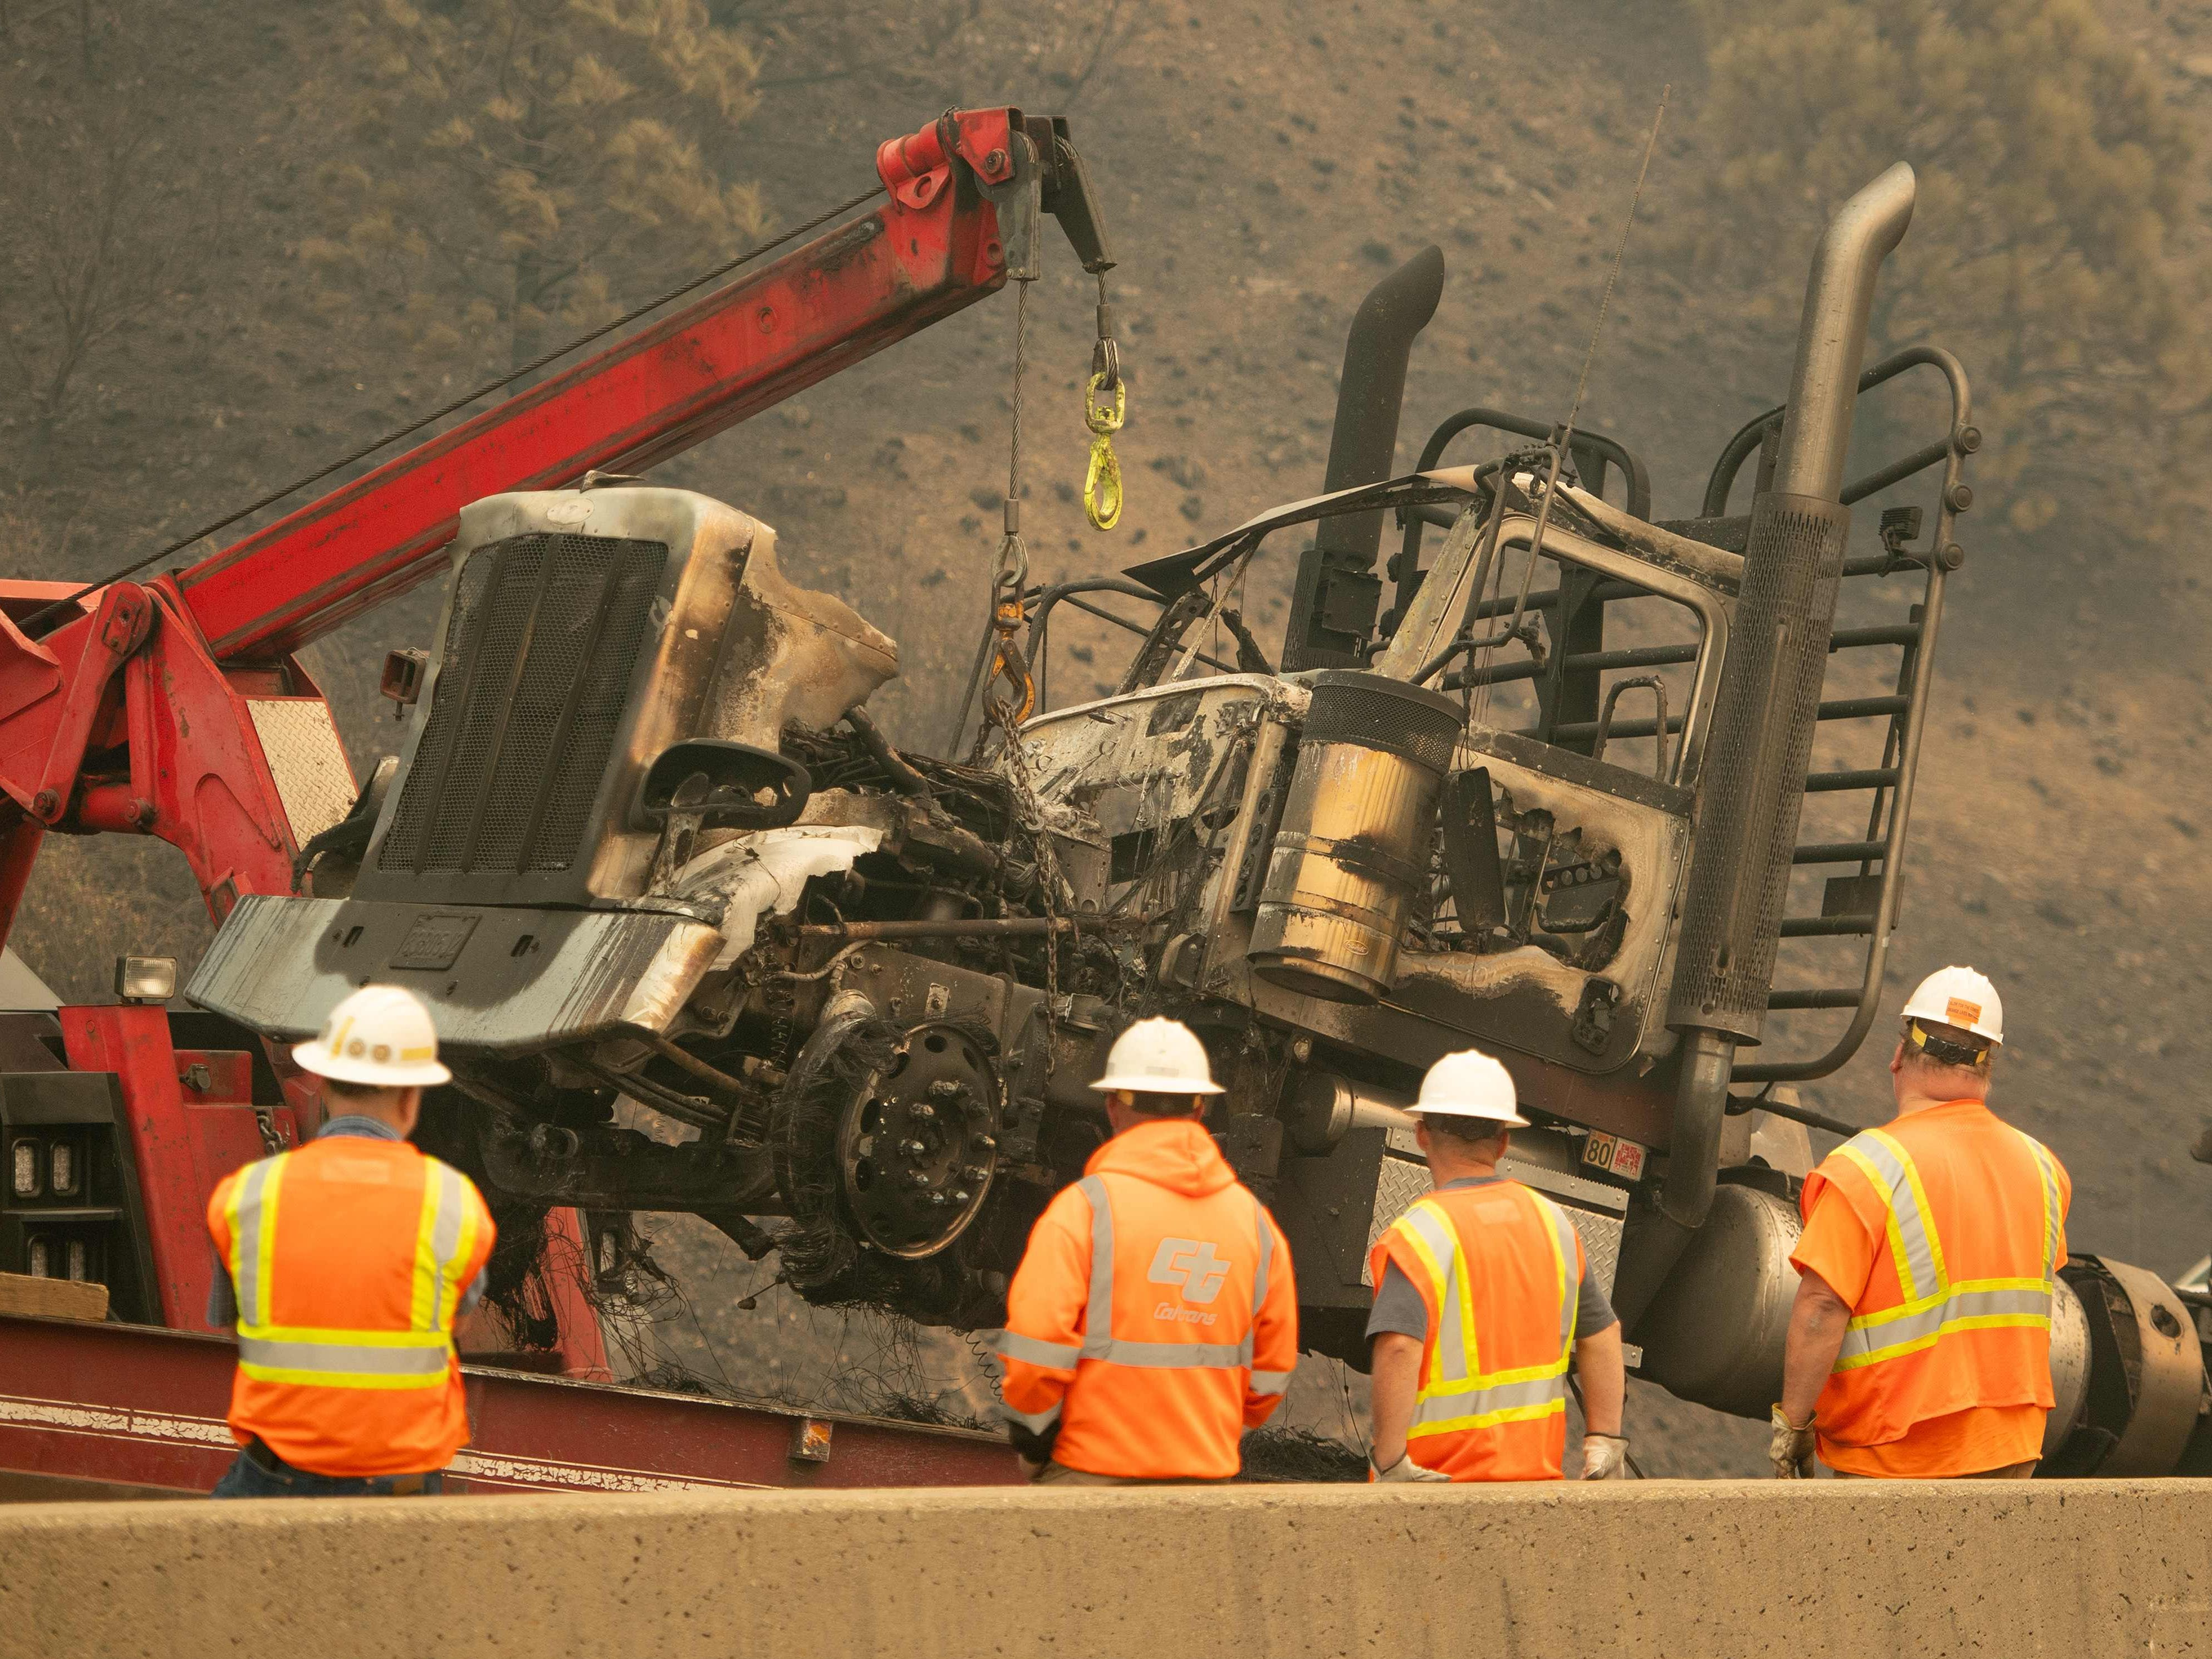 Caltrans workers remove a burned out truck along Interstate 5 during the Delta Fire near Delta, California in the Shasta Trinity National Forest on September 6, 2018. (Photo by JOSH EDELSON / AFP)JOSH EDELSON/AFP/Getty Images ORG XMIT: Californi ORIG FILE ID: AFP_18W7LQ